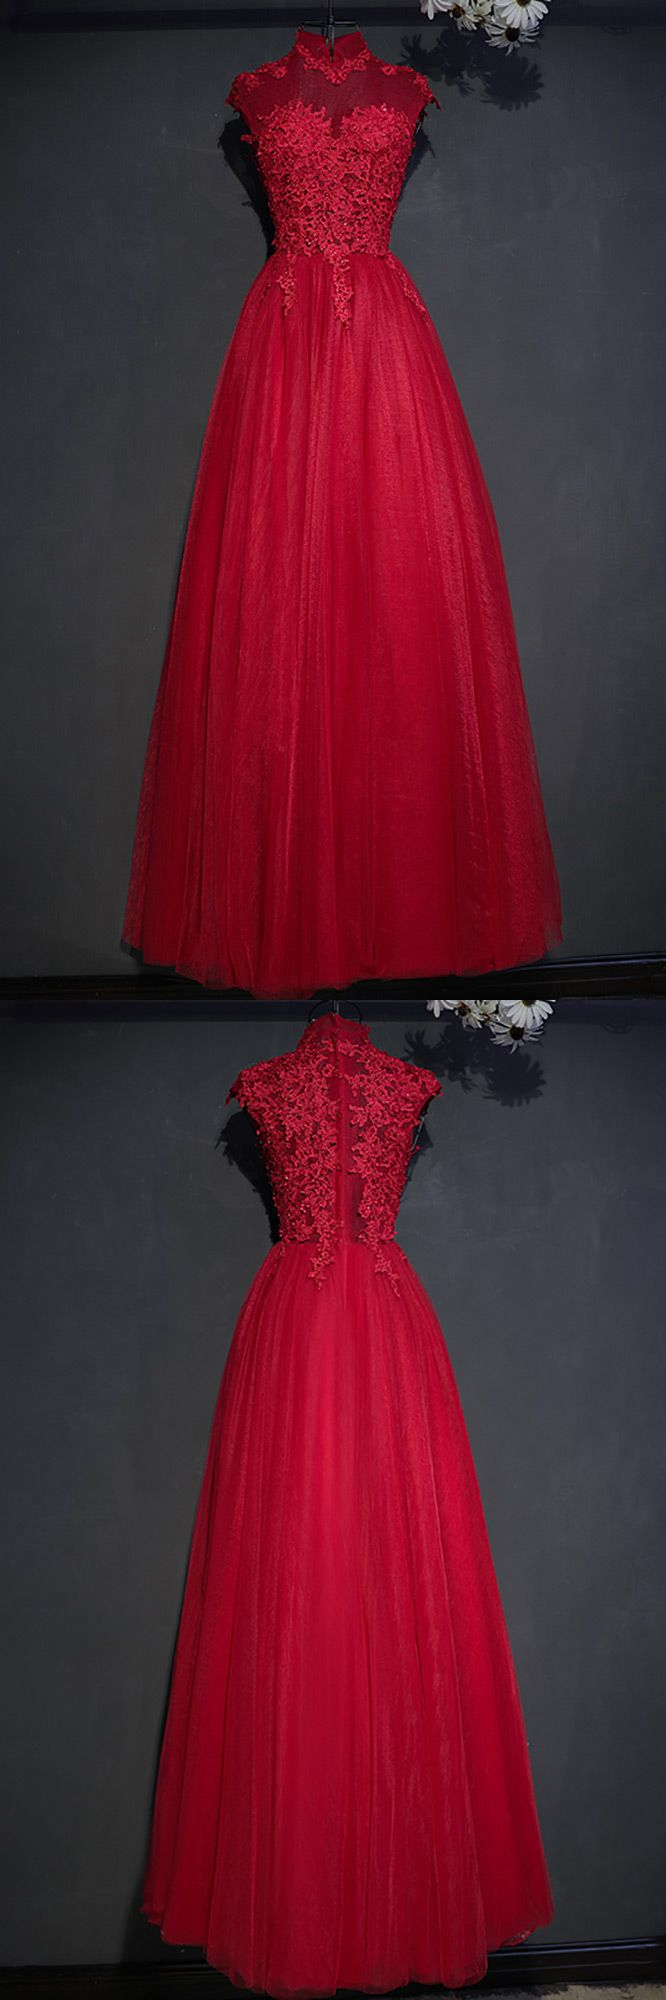 Only $118, Prom Dresses Vintage Lace High Neck Long Tulle Prom Party Dress Burgundy #MYX18102 at #GemGrace. View more special Bridal Party Dresses,Prom Dresses now? GemGrace is a solution for those who want to buy delicate gowns with affordable prices, a solution for those who have unique ideas about their gowns. 2018 new arrived, shop now to get $10 off!